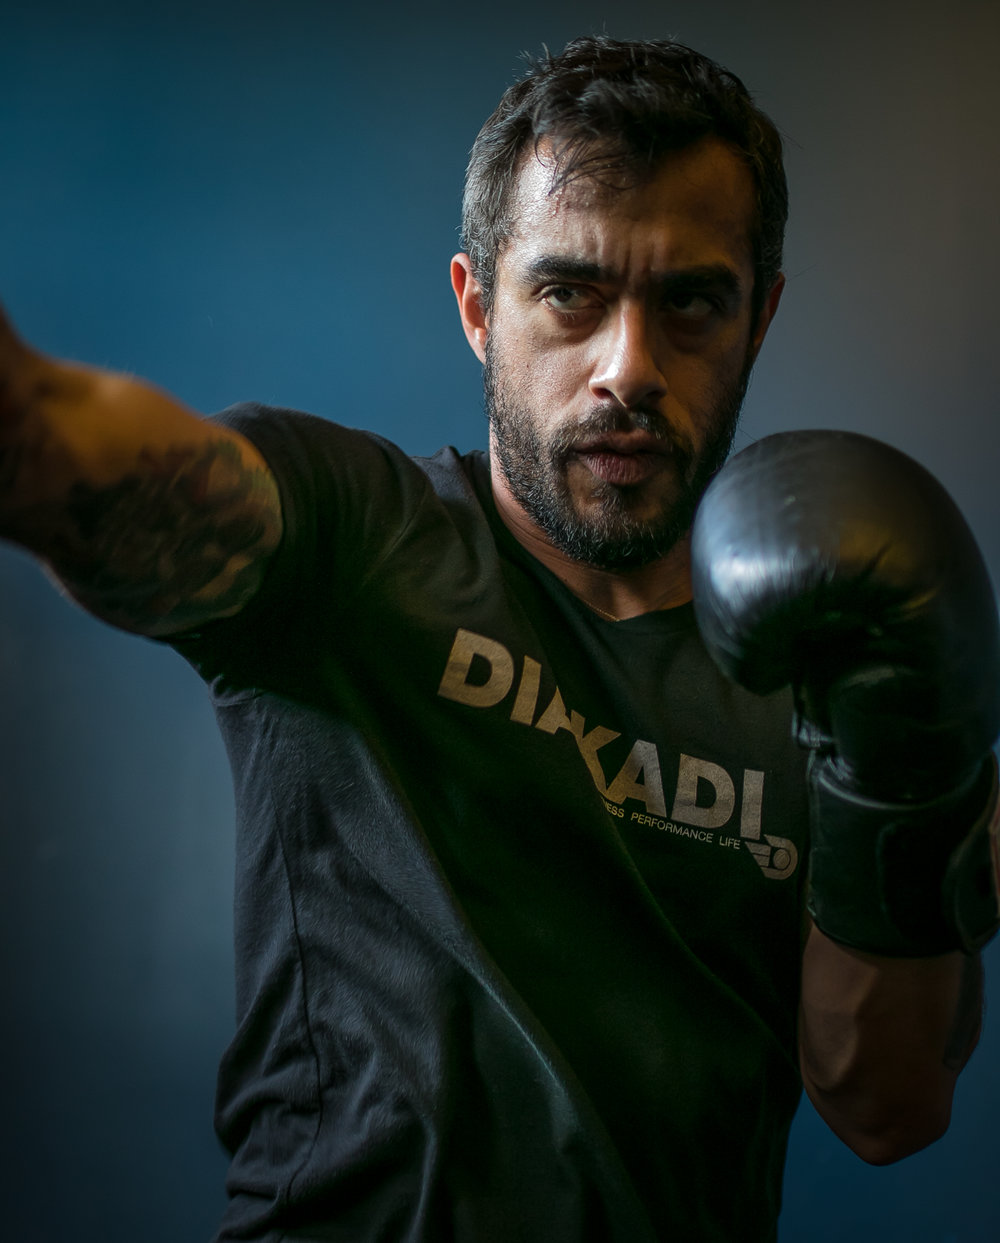 DIAKADI Trainer Pablo Schmidt-Escobar MMA conditioning.jpg